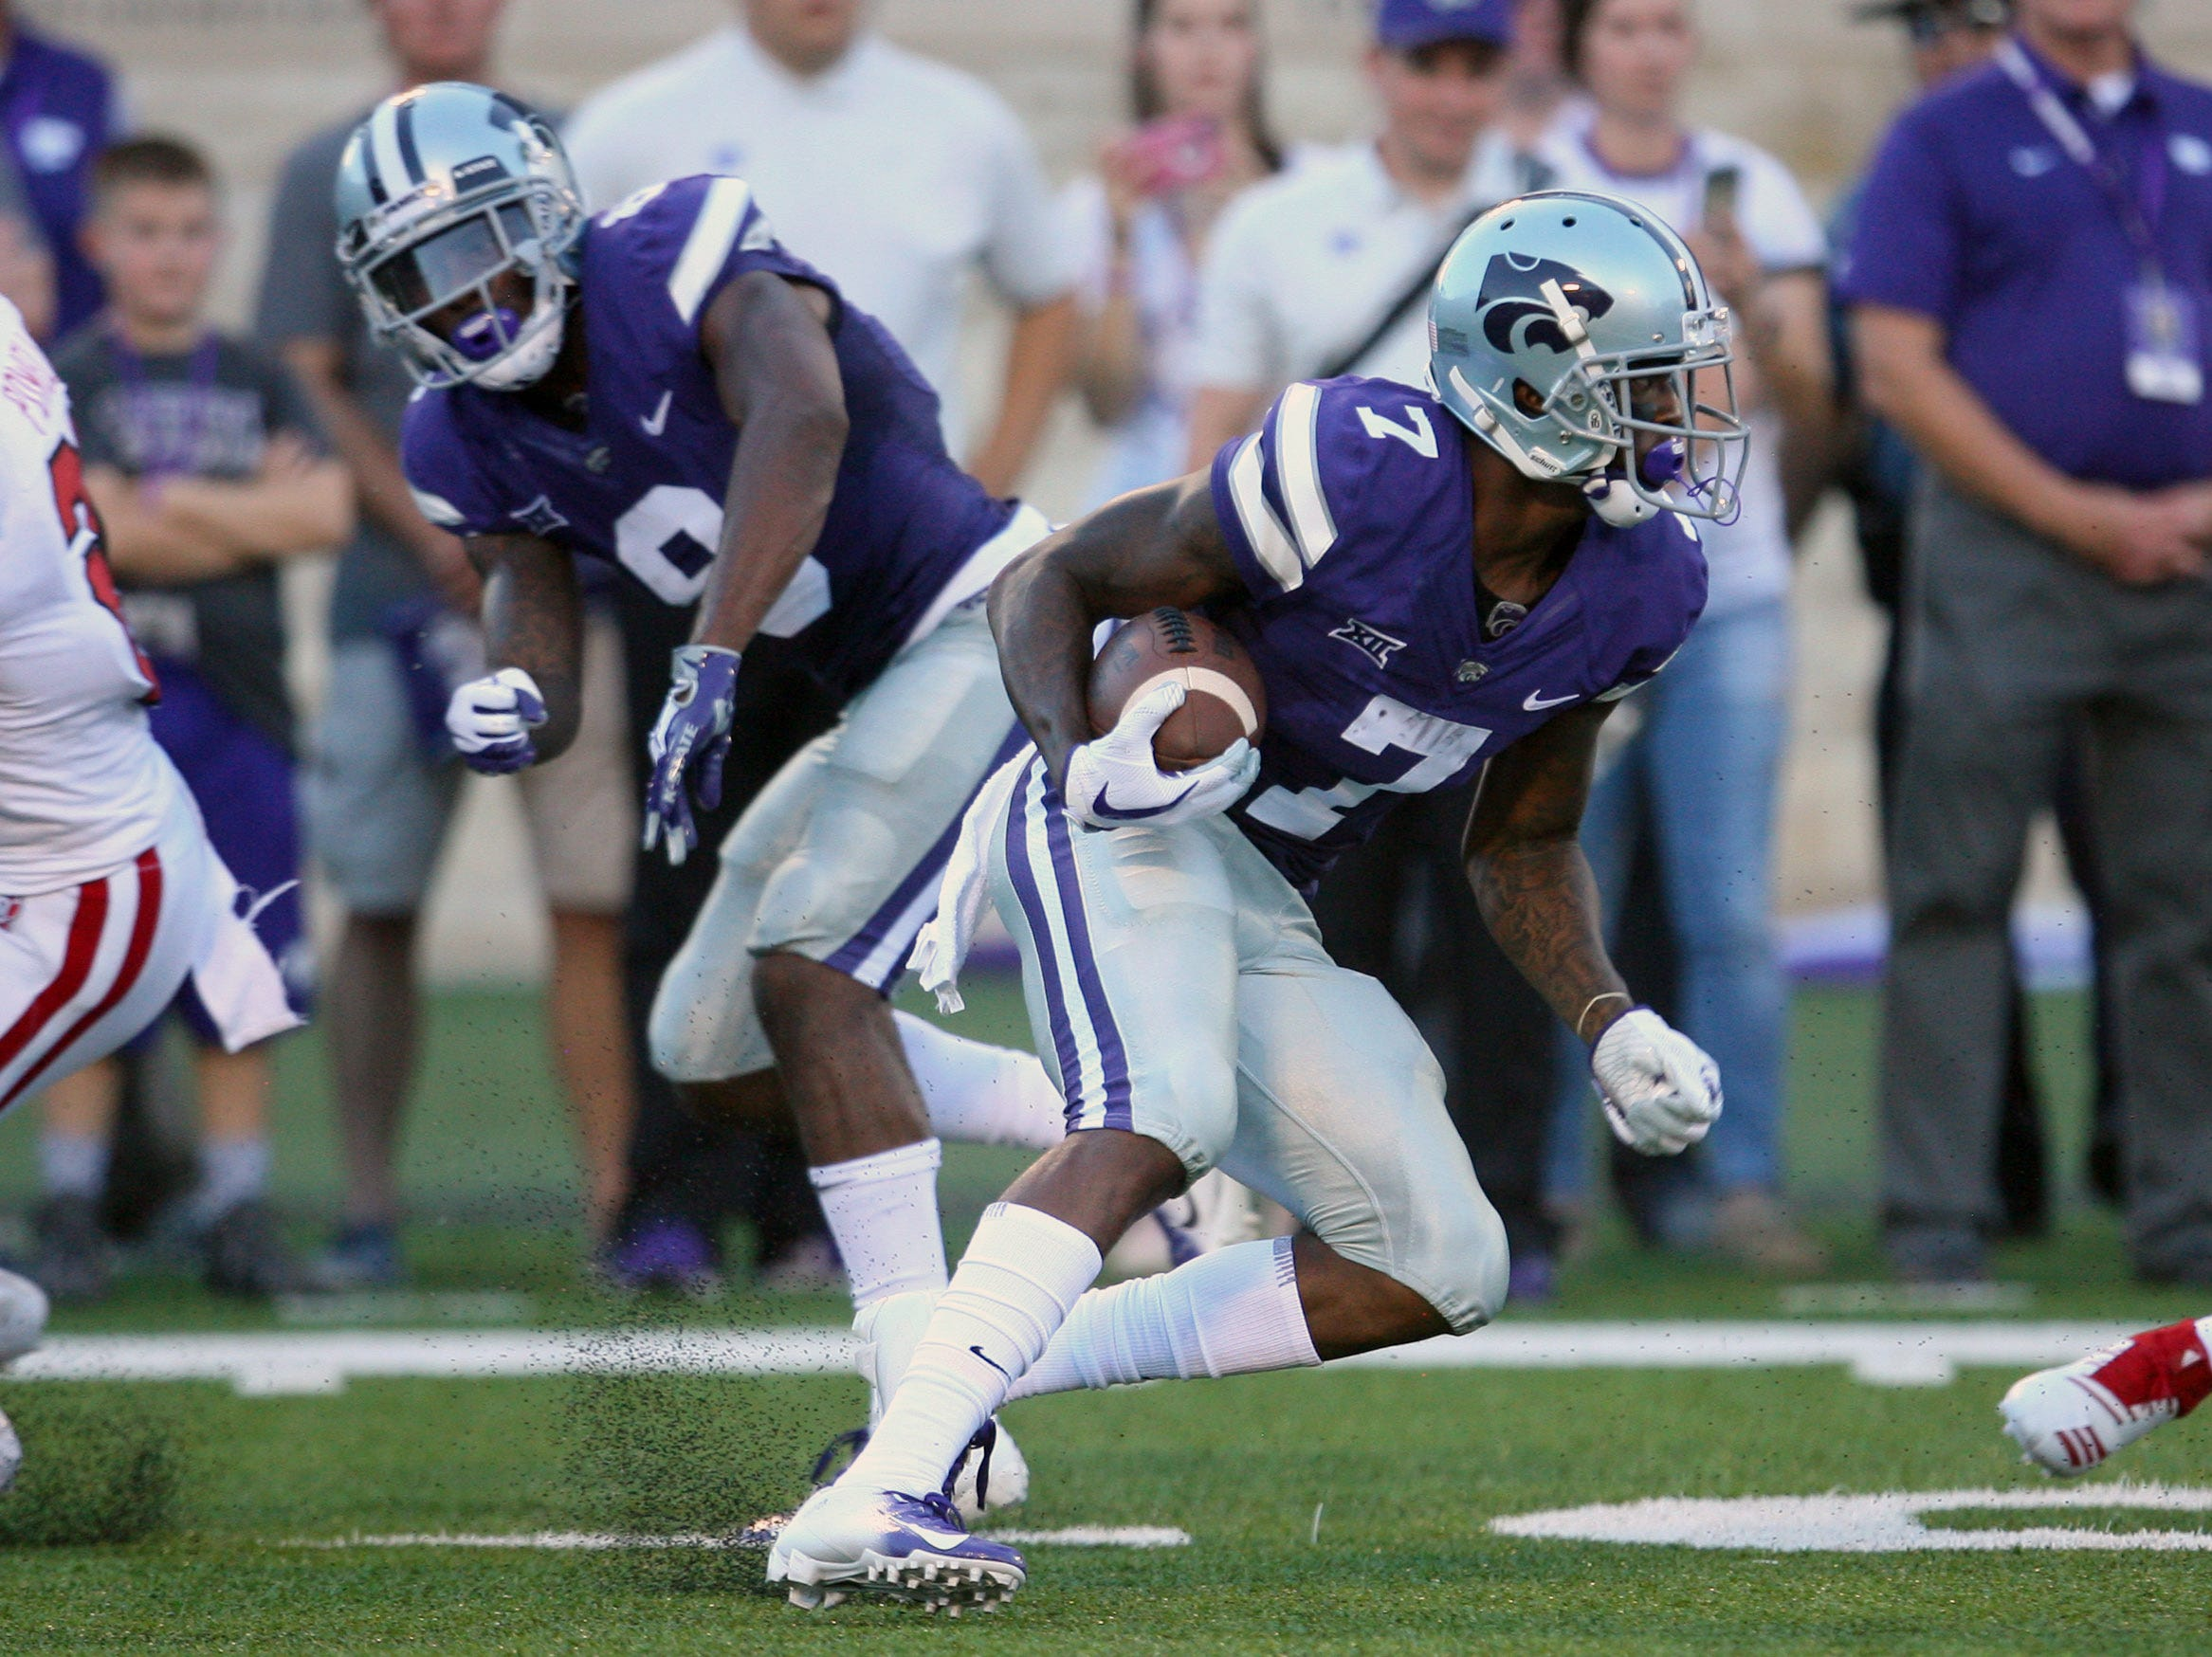 Sep 1, 2018; Manhattan, KS, USA; Kansas State Wildcats wide receiver Isaiah Zuber (7) looks for carries the ball against the South Dakota Coyotes at Bill Snyder Family Stadium. Mandatory Credit: Scott Sewell-USA TODAY Sports